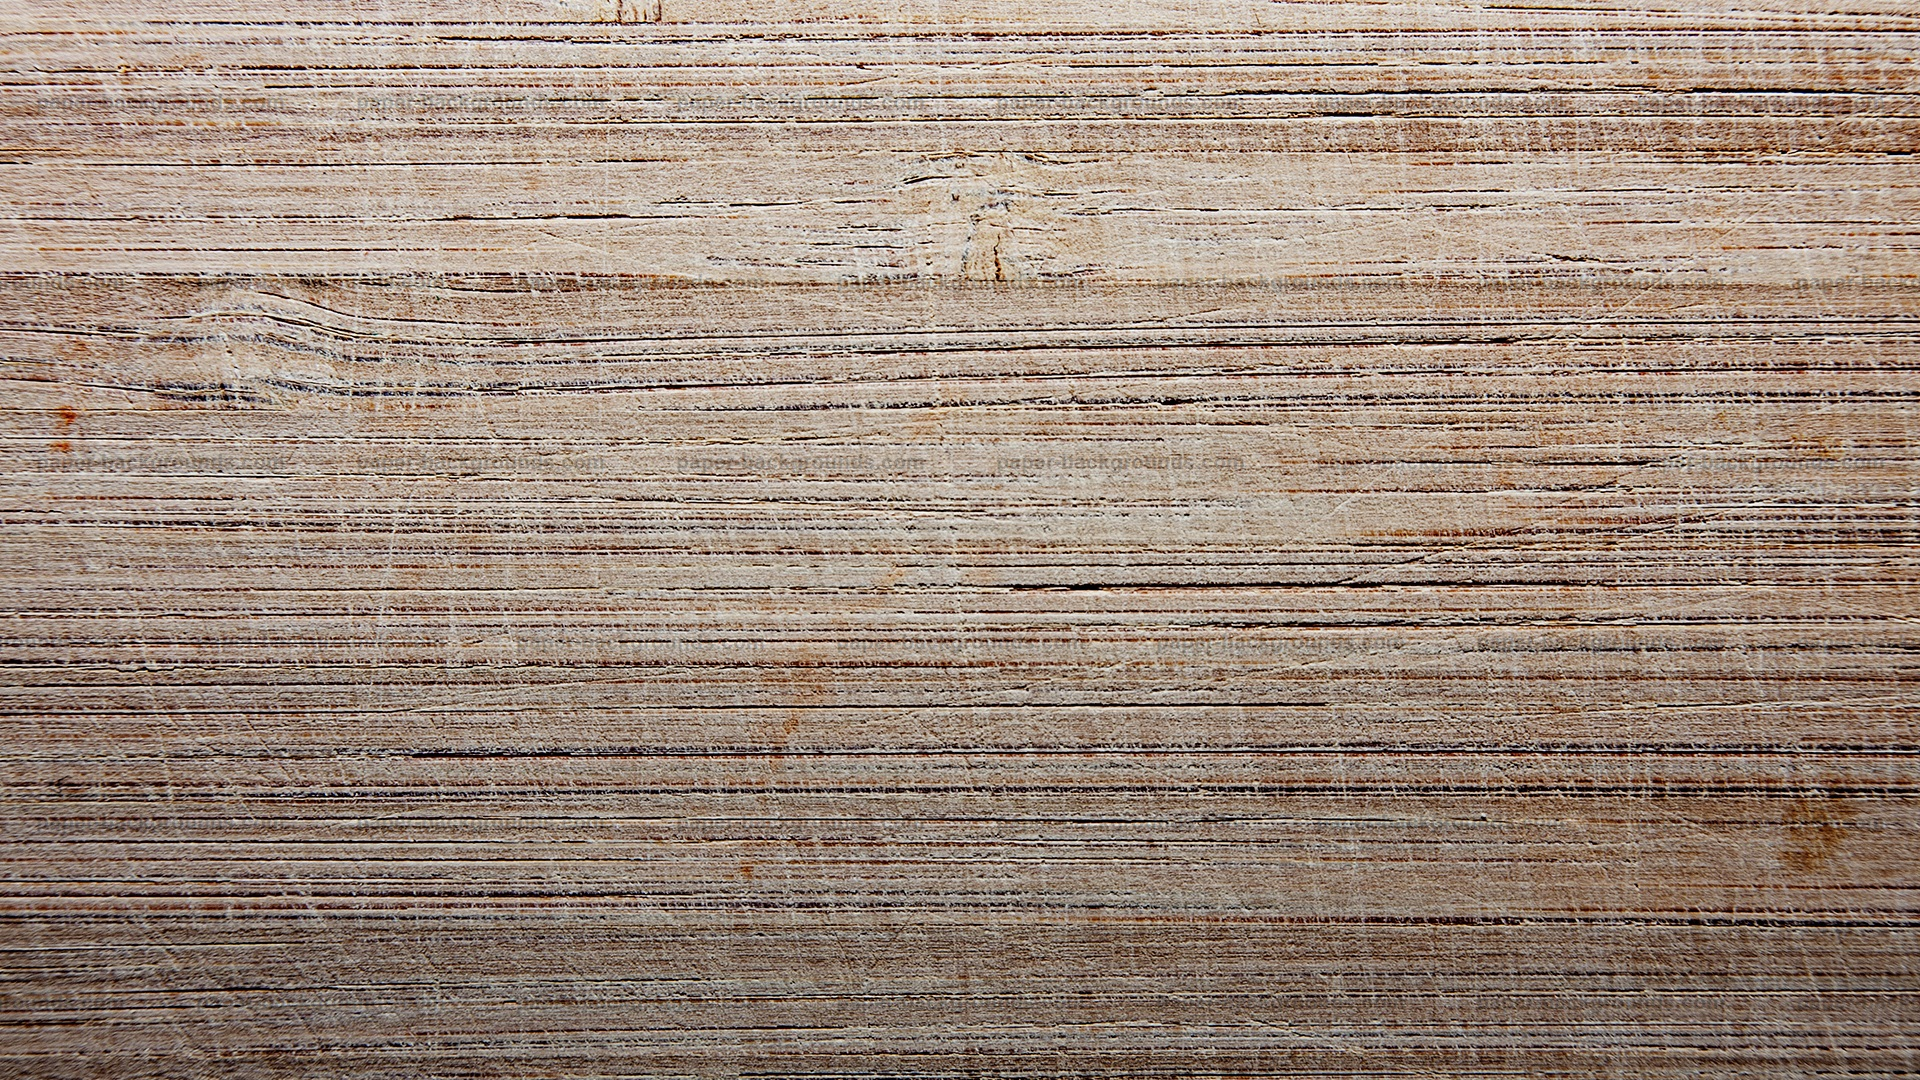 Old Wood Texture Background Hd1 Jpg 1920 215 1080 Free For